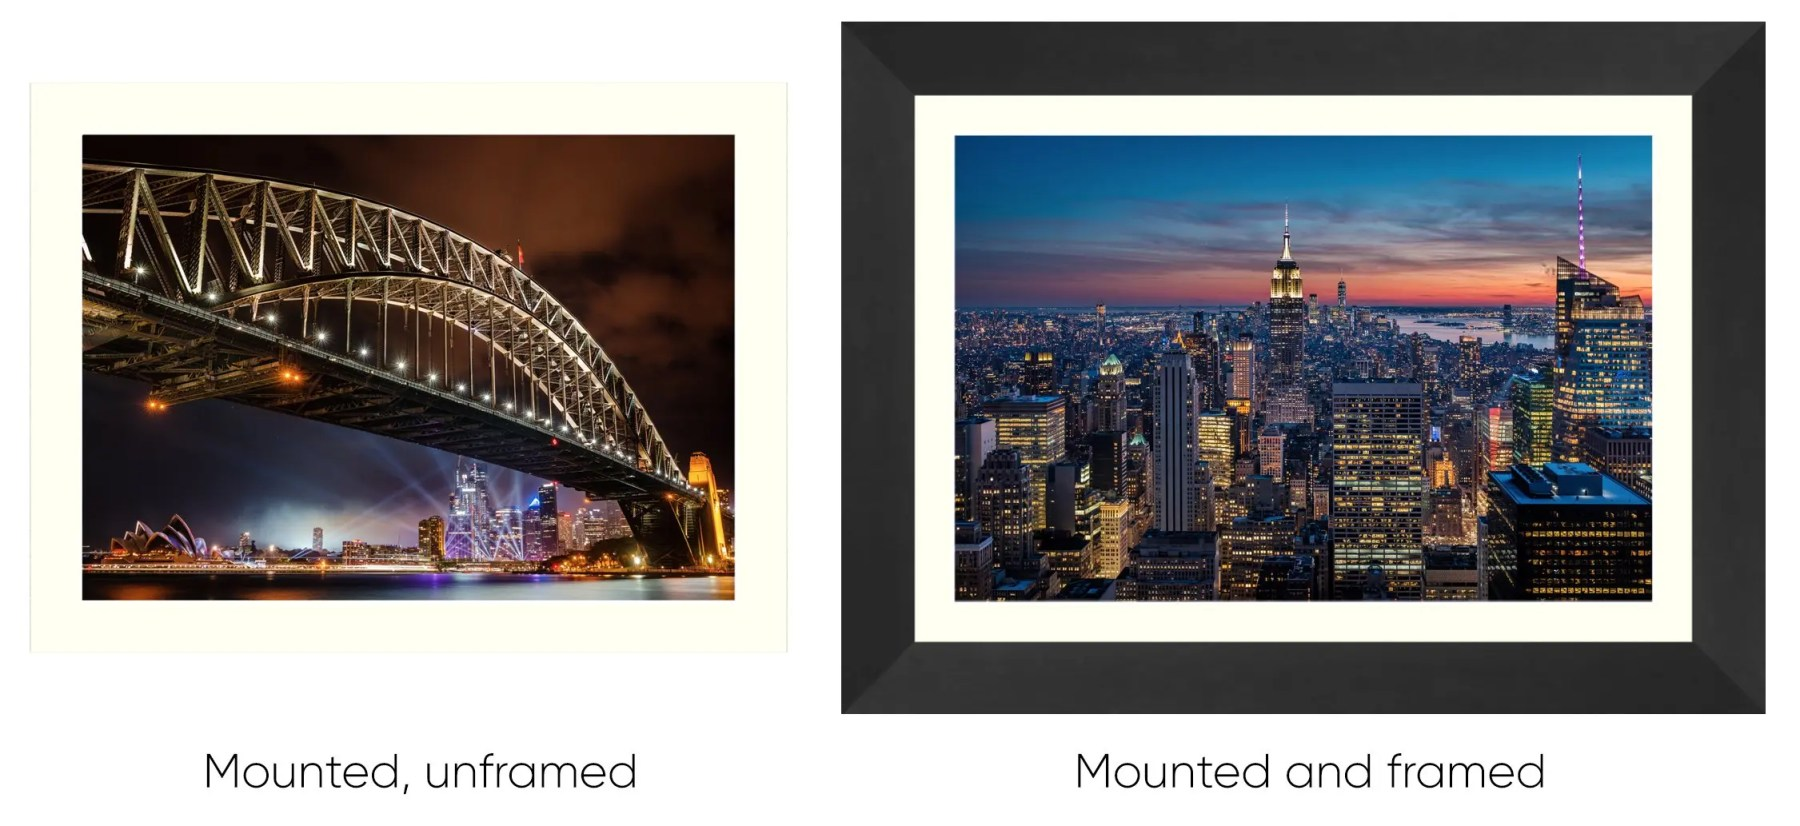 Mounted unframed and framed examples